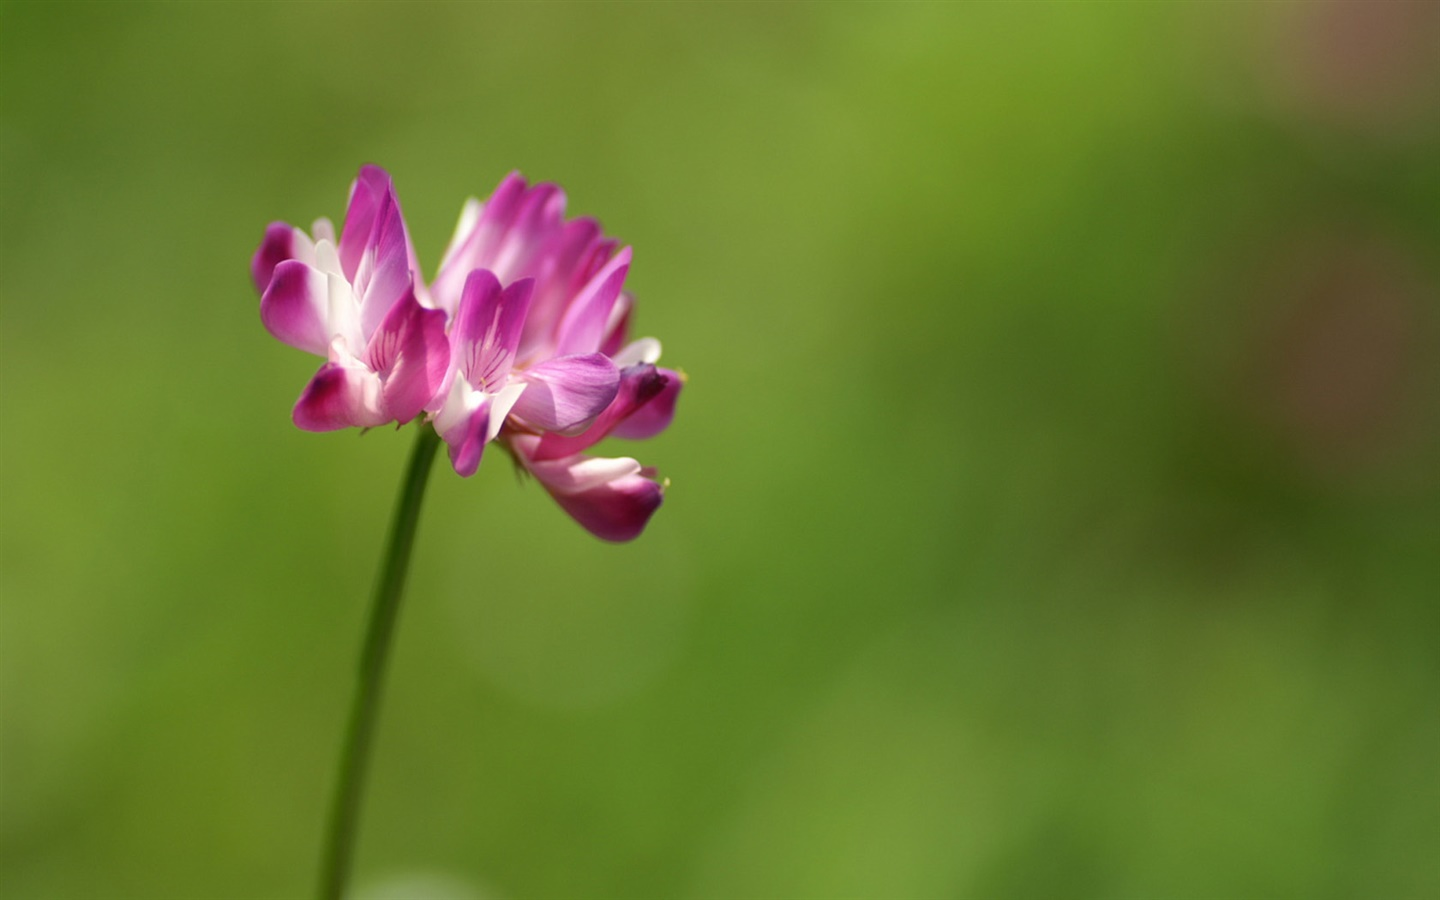 Single pink flower close-up, green background 1440x900 wallpaper